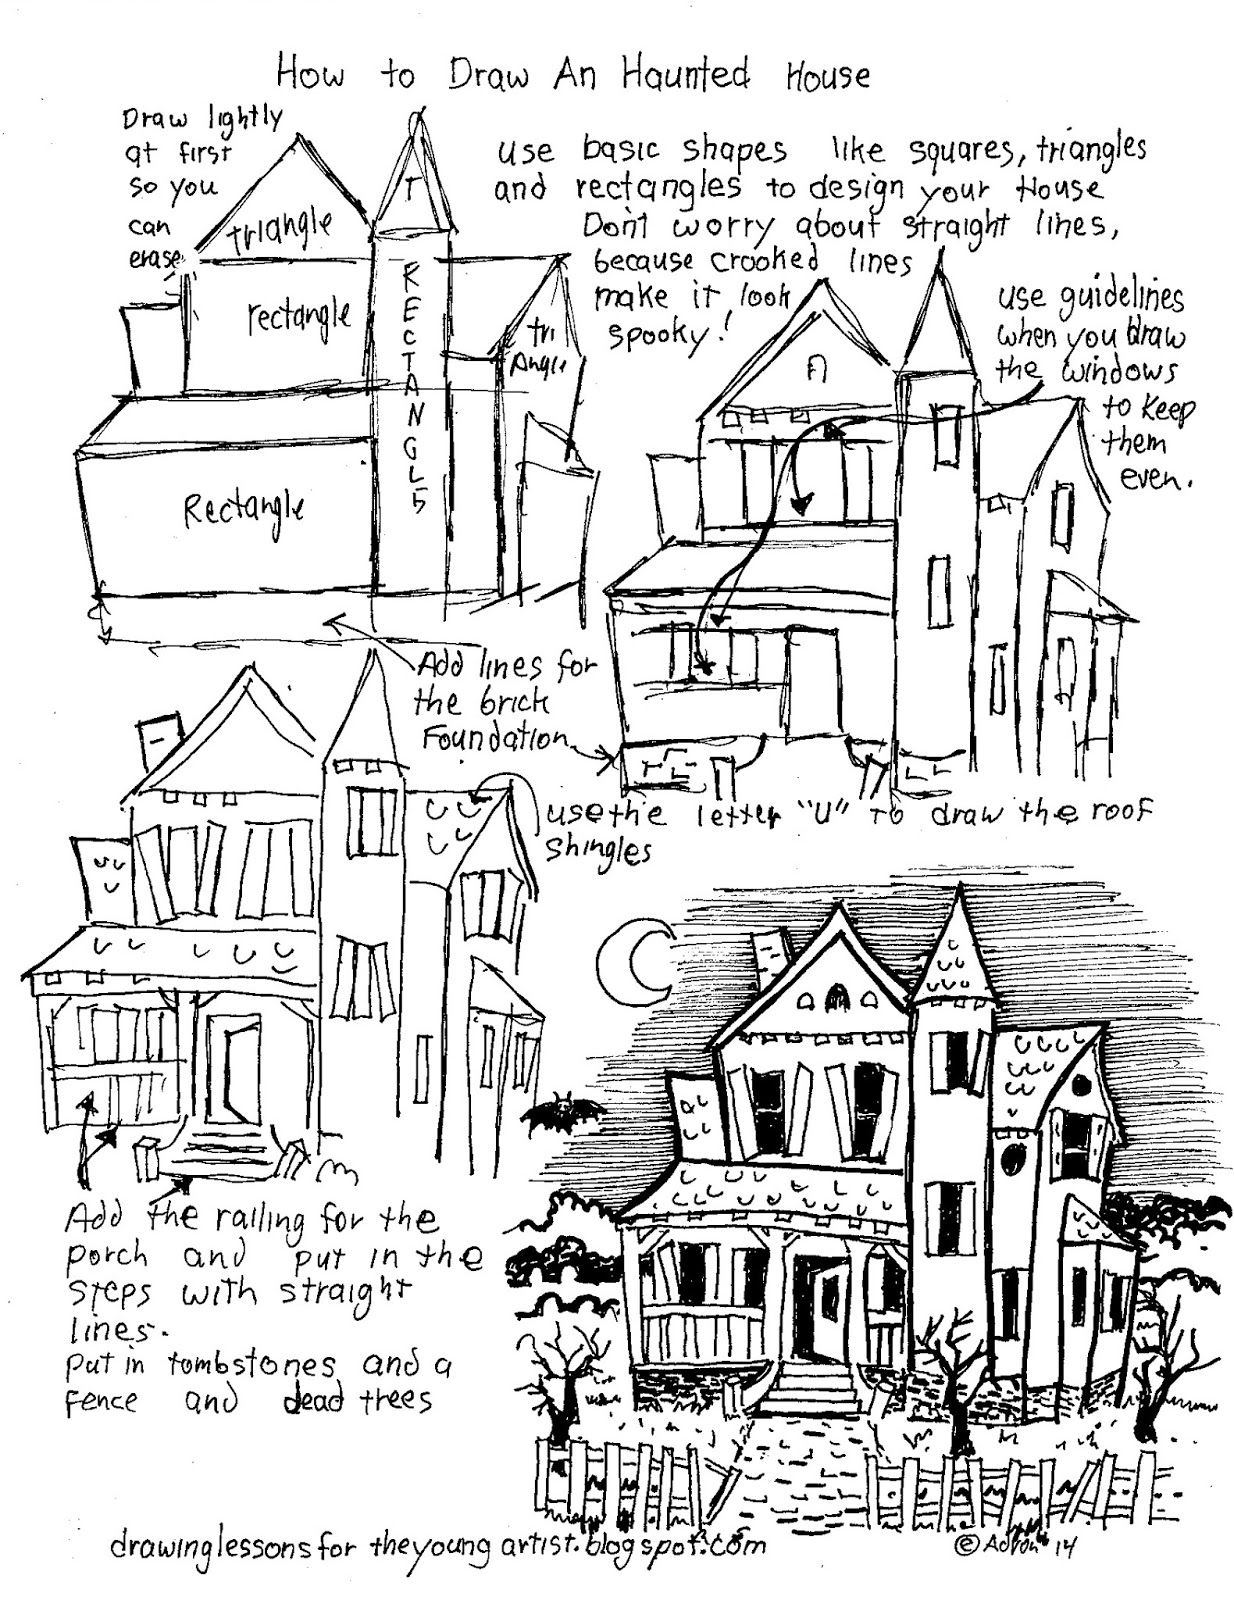 How To Draw A Haunted House These Old Houses Come In All